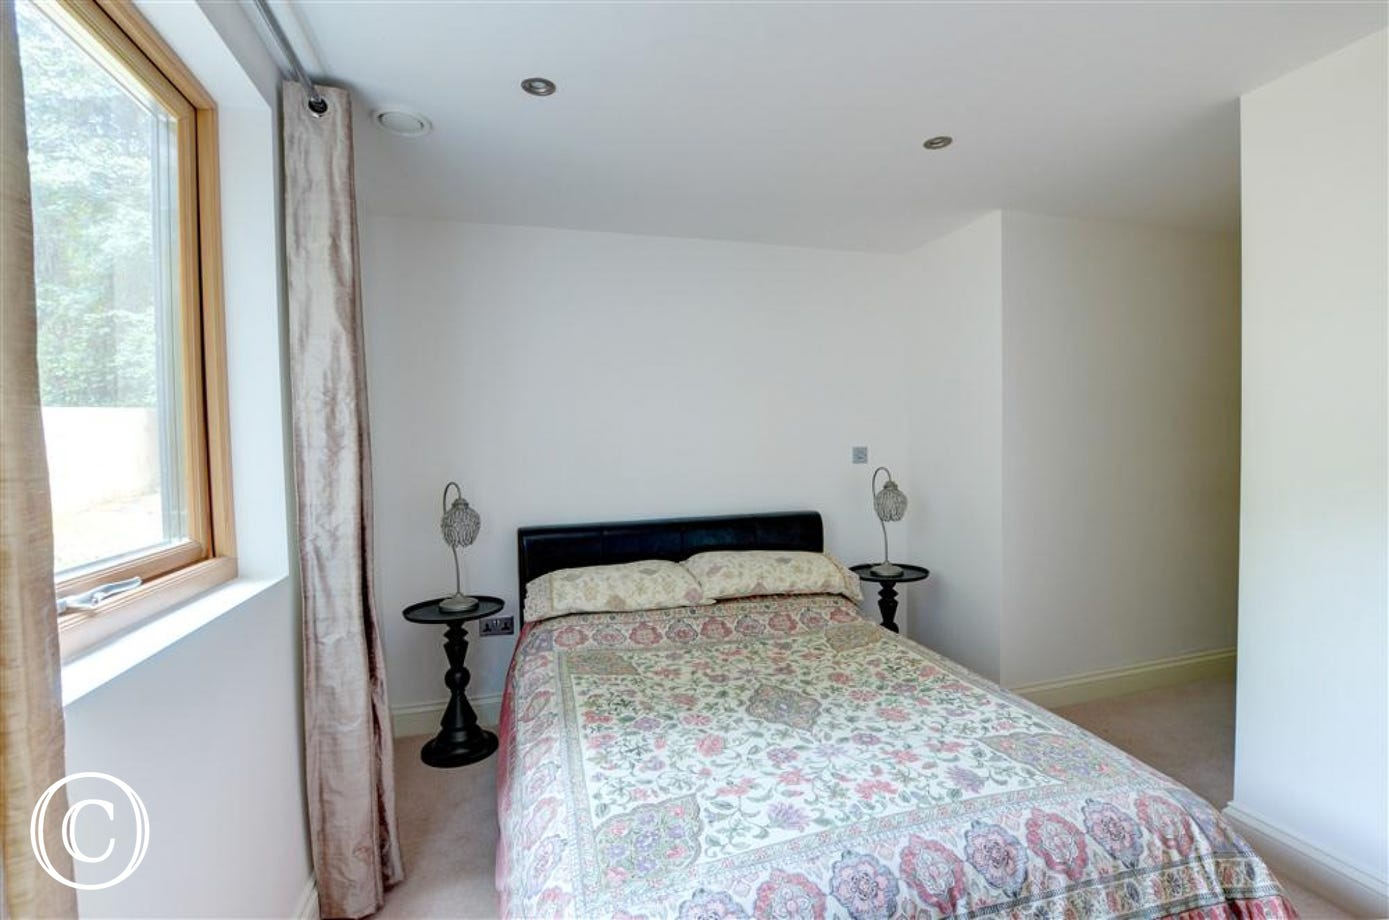 This bedroom has a double bed and ornate bedside tables